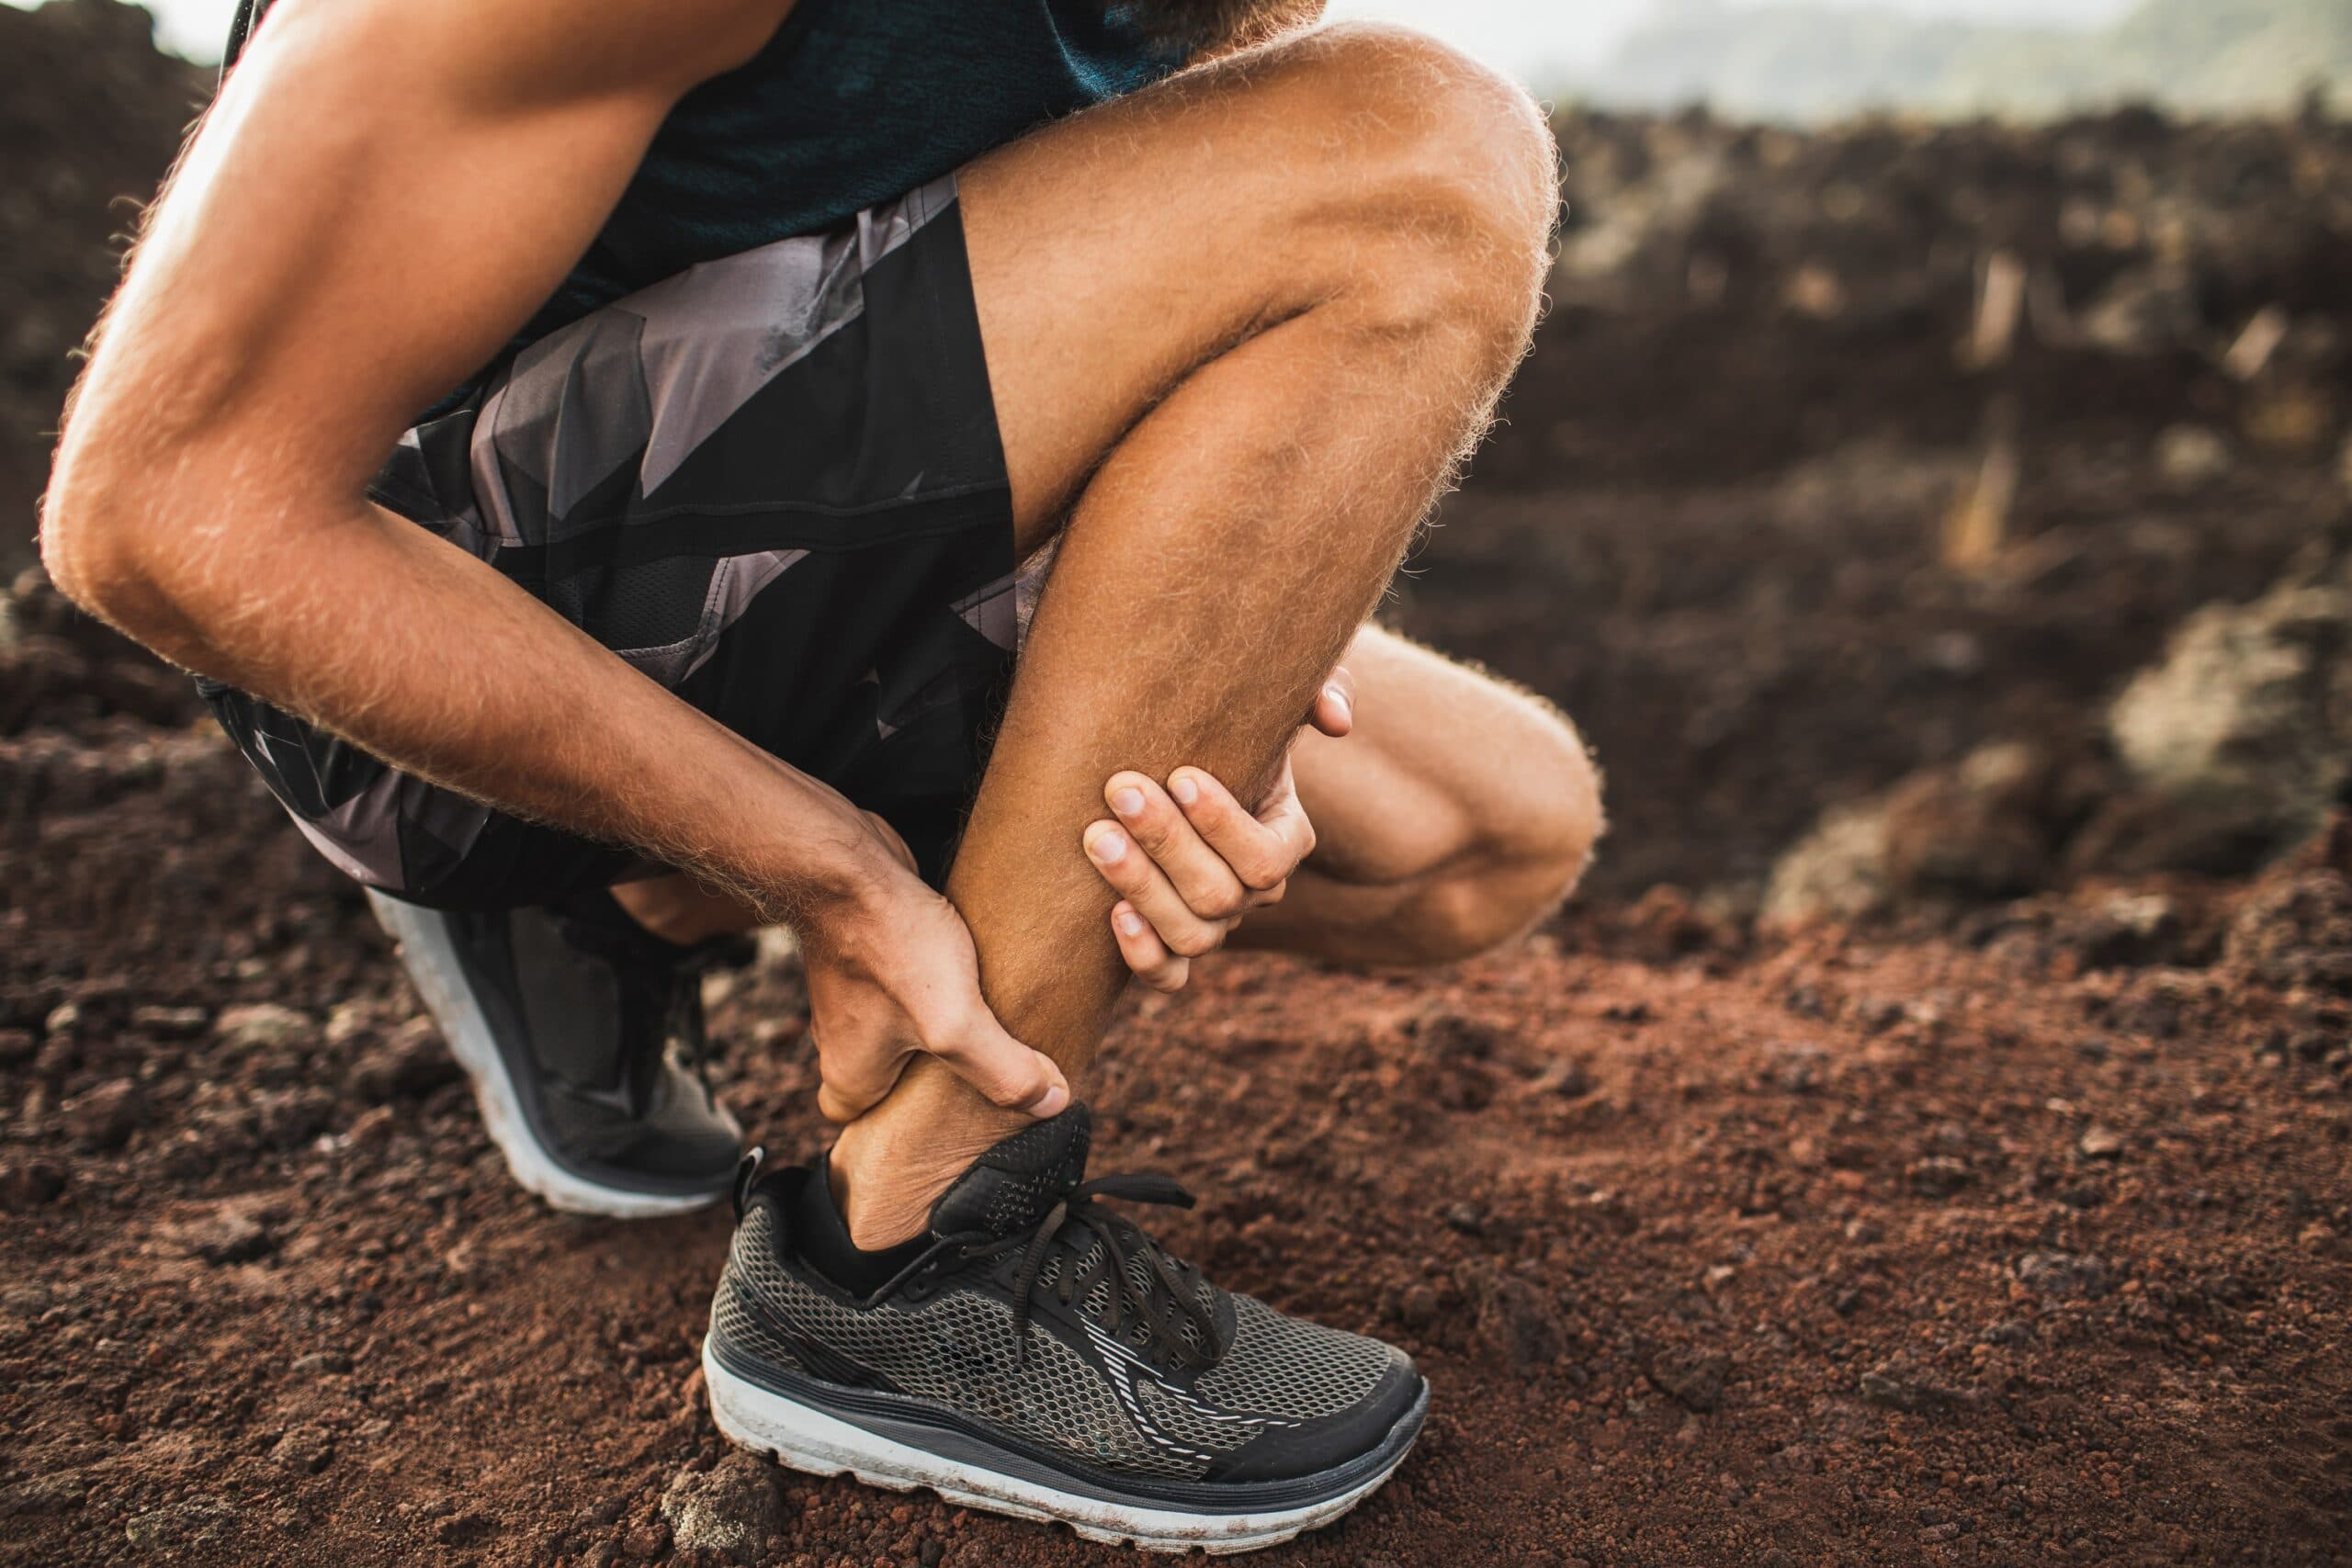 How To Detect and Treat a Ruptured Achilles Tendon